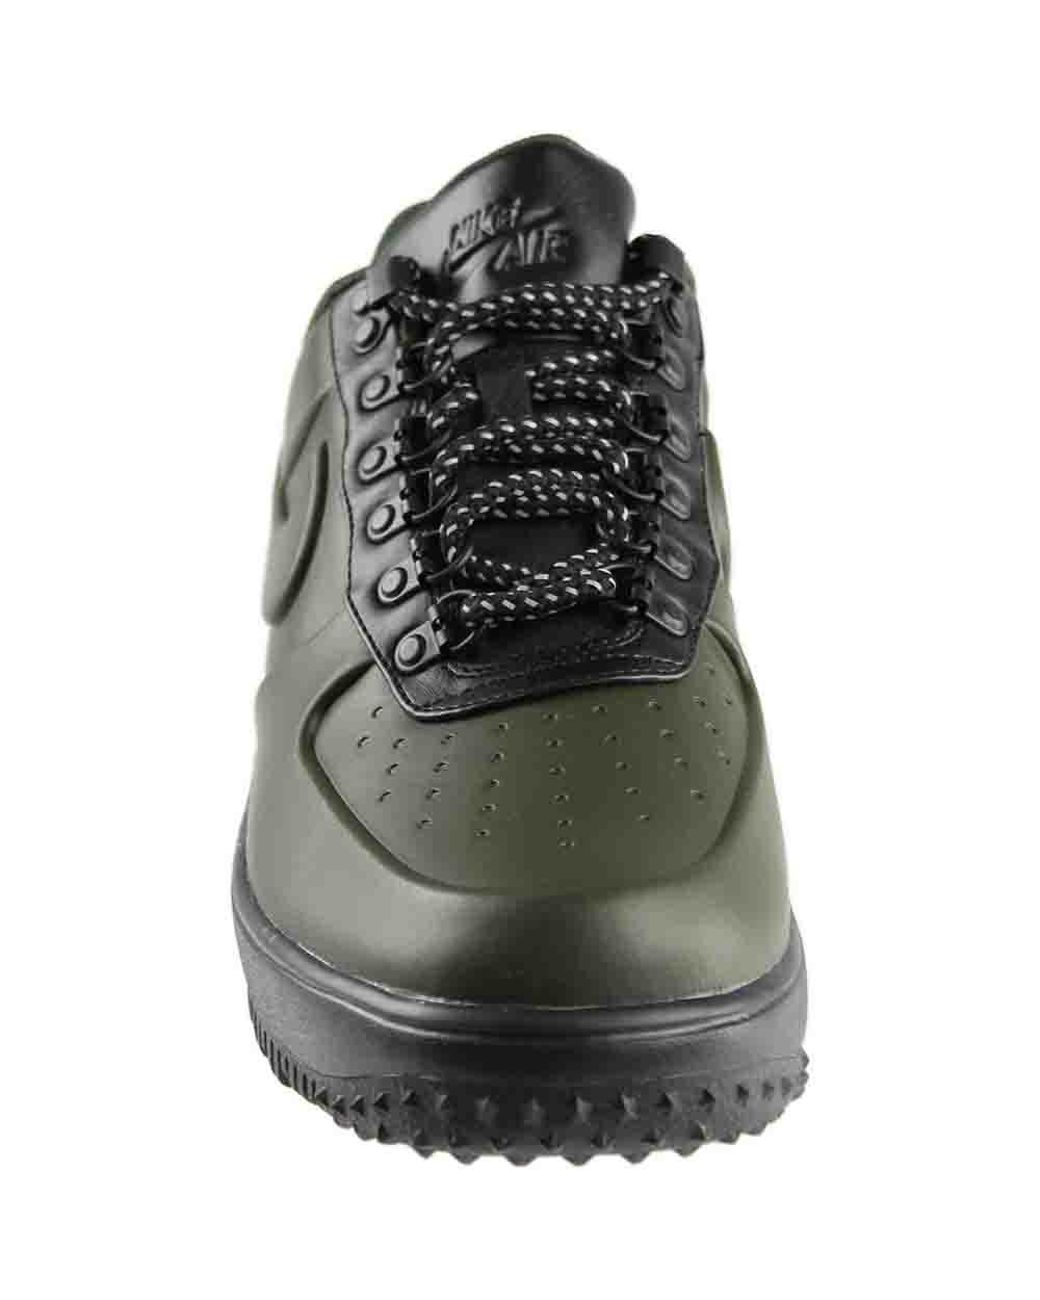 official photos d276b 22cd0 Nike Lunar Force 1 Duckboot Low in Green for Men - Lyst